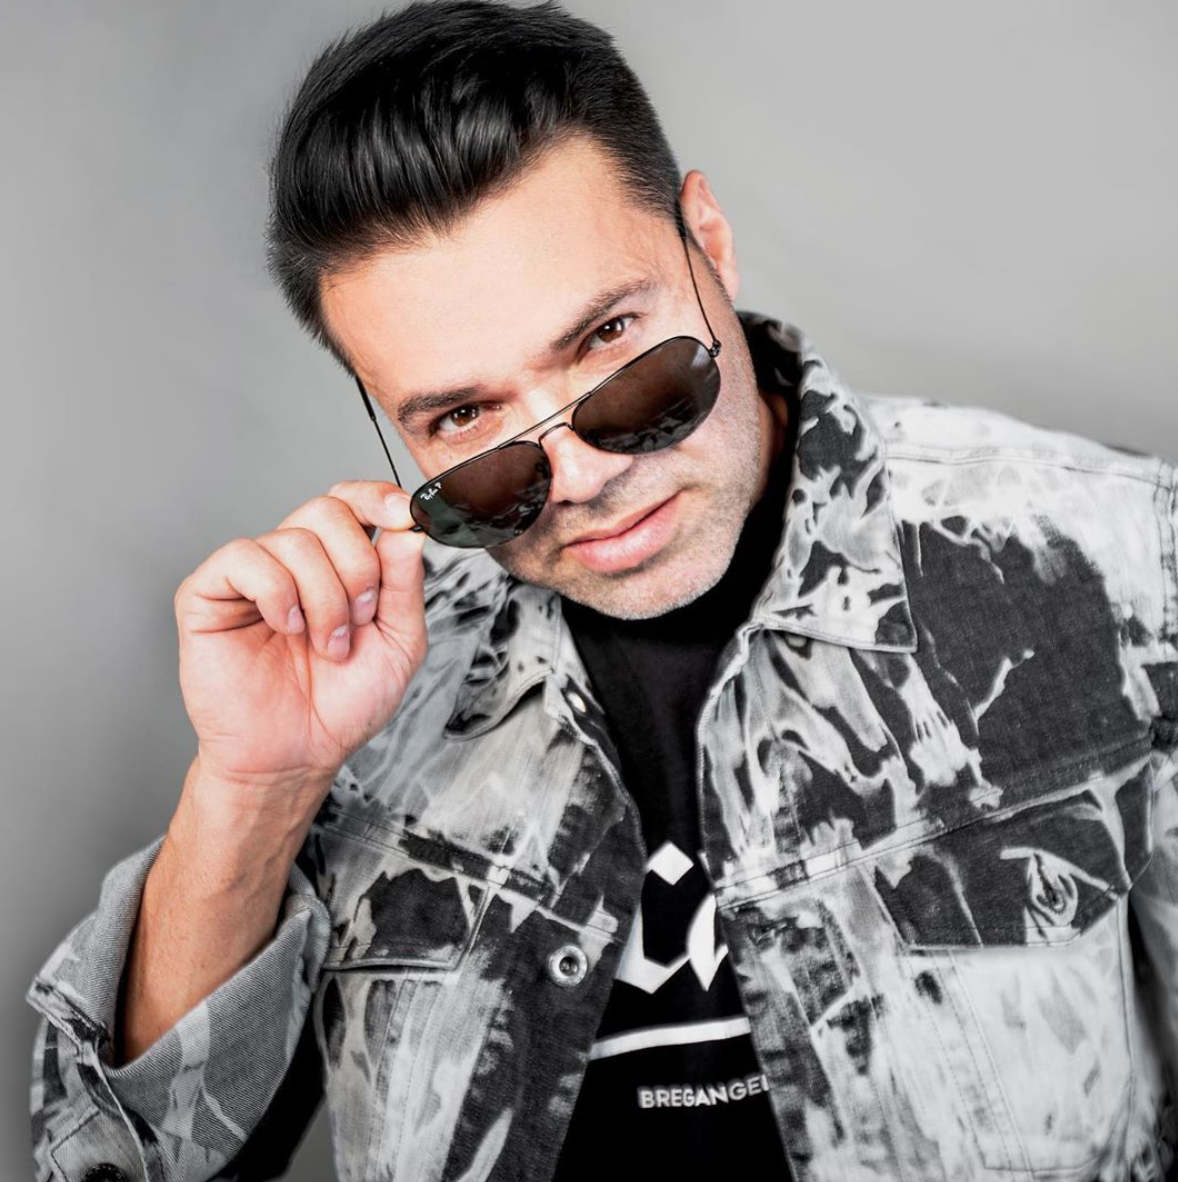 Popular Singer and Musician Kingtana's latest song 'Relajate Y Coopera' has already been released